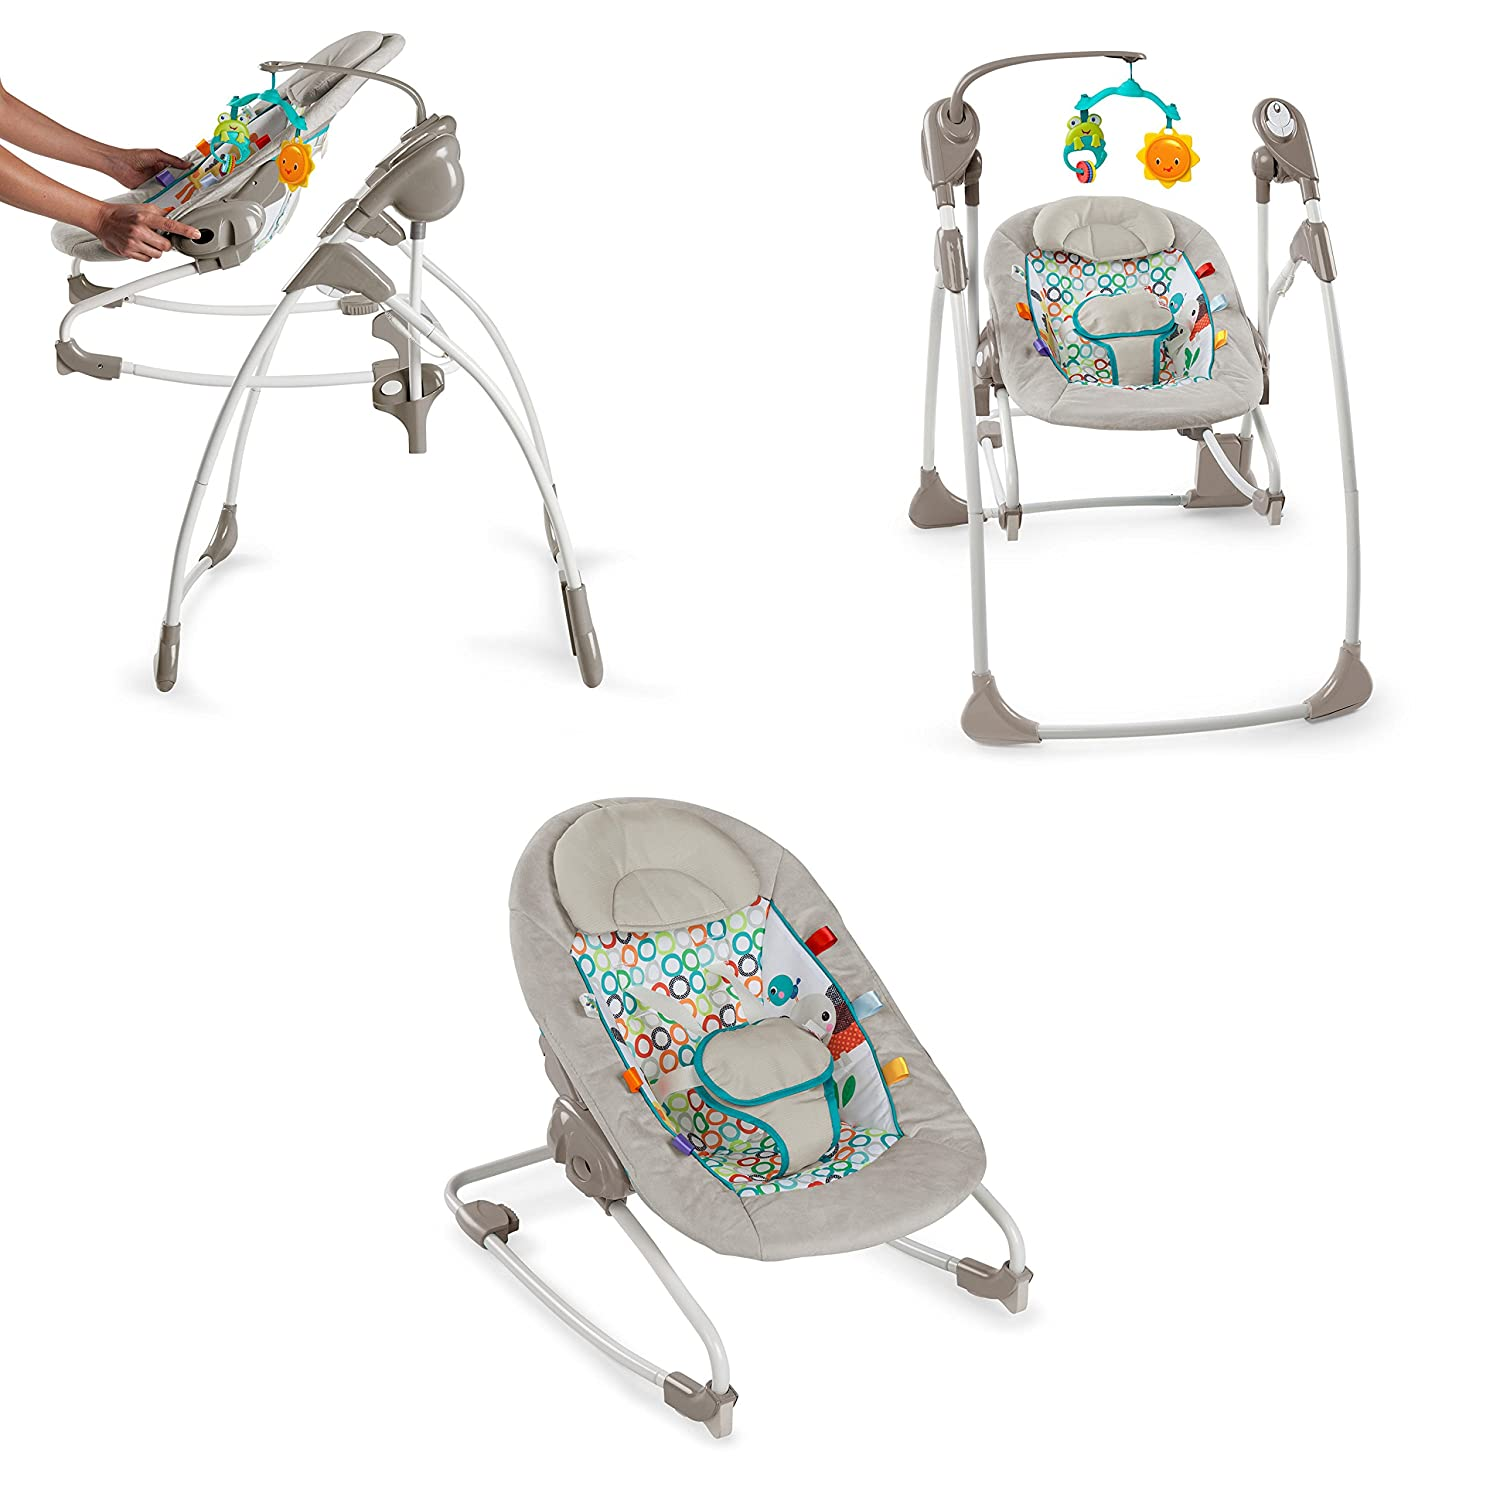 Bright Starts Rock and Swing 2-in-1-Jungle Stream, Grey/Red/Orange/White KidsII 10114